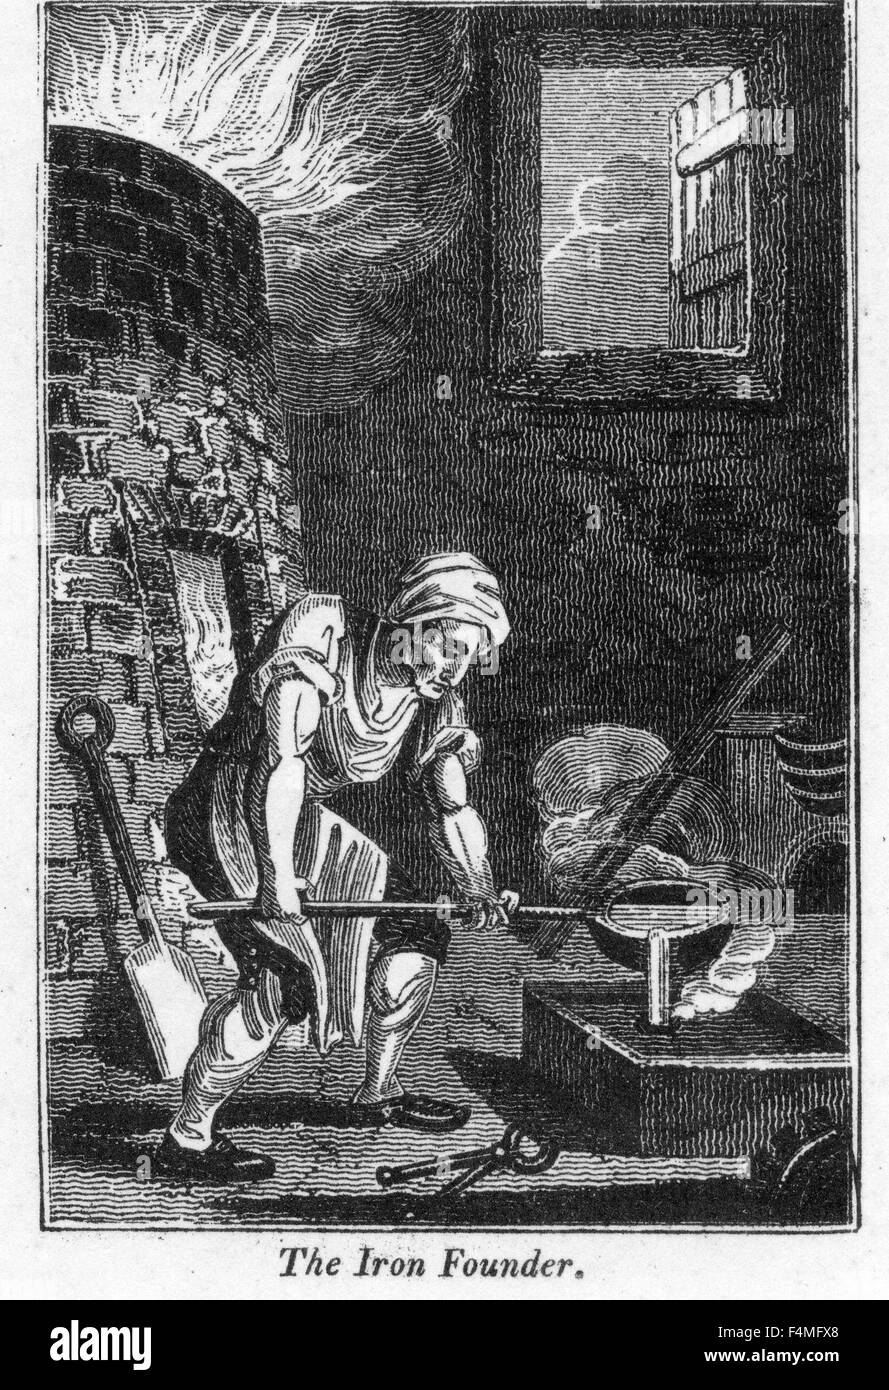 IRON FOUNDRY 'The Iron Founder' from the 1823 Book of Trades - Stock Image